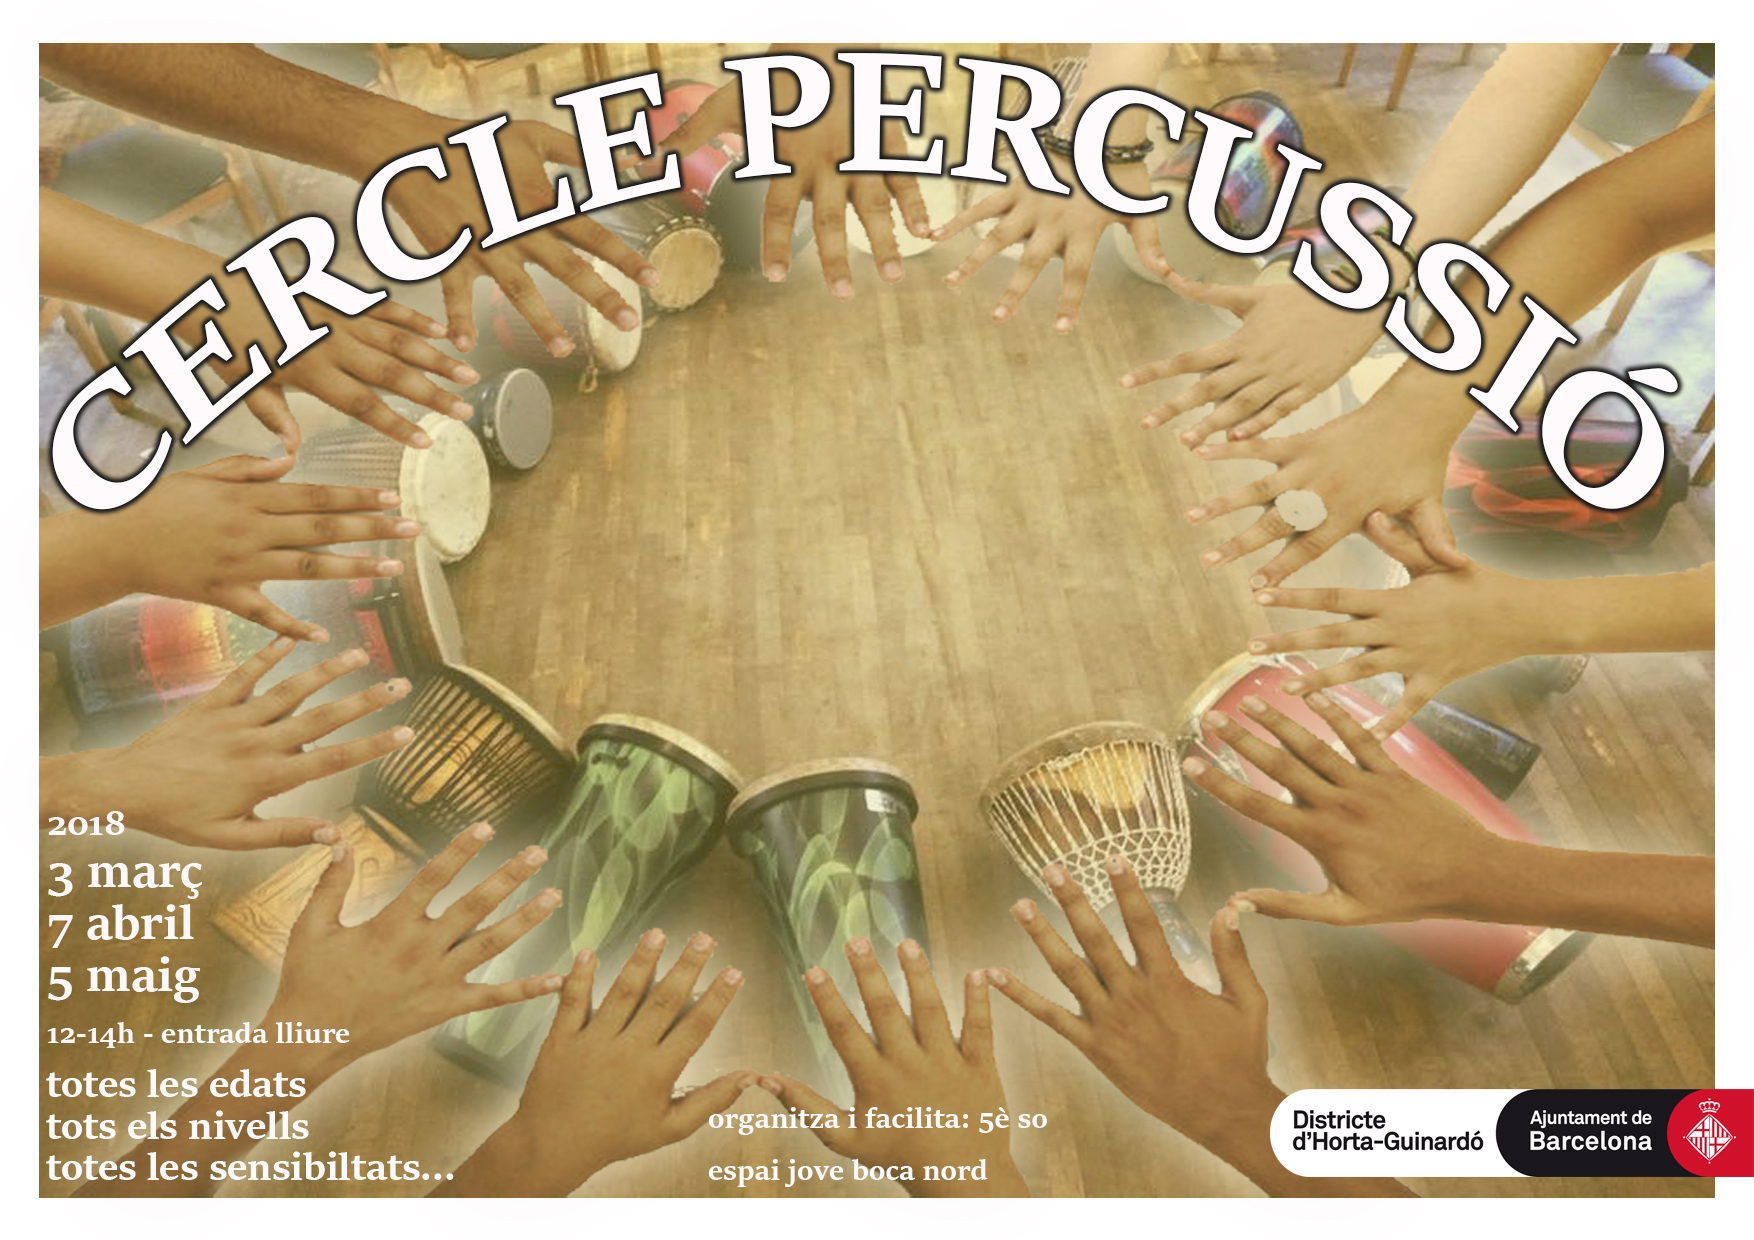 cercle percussio cartell 2018